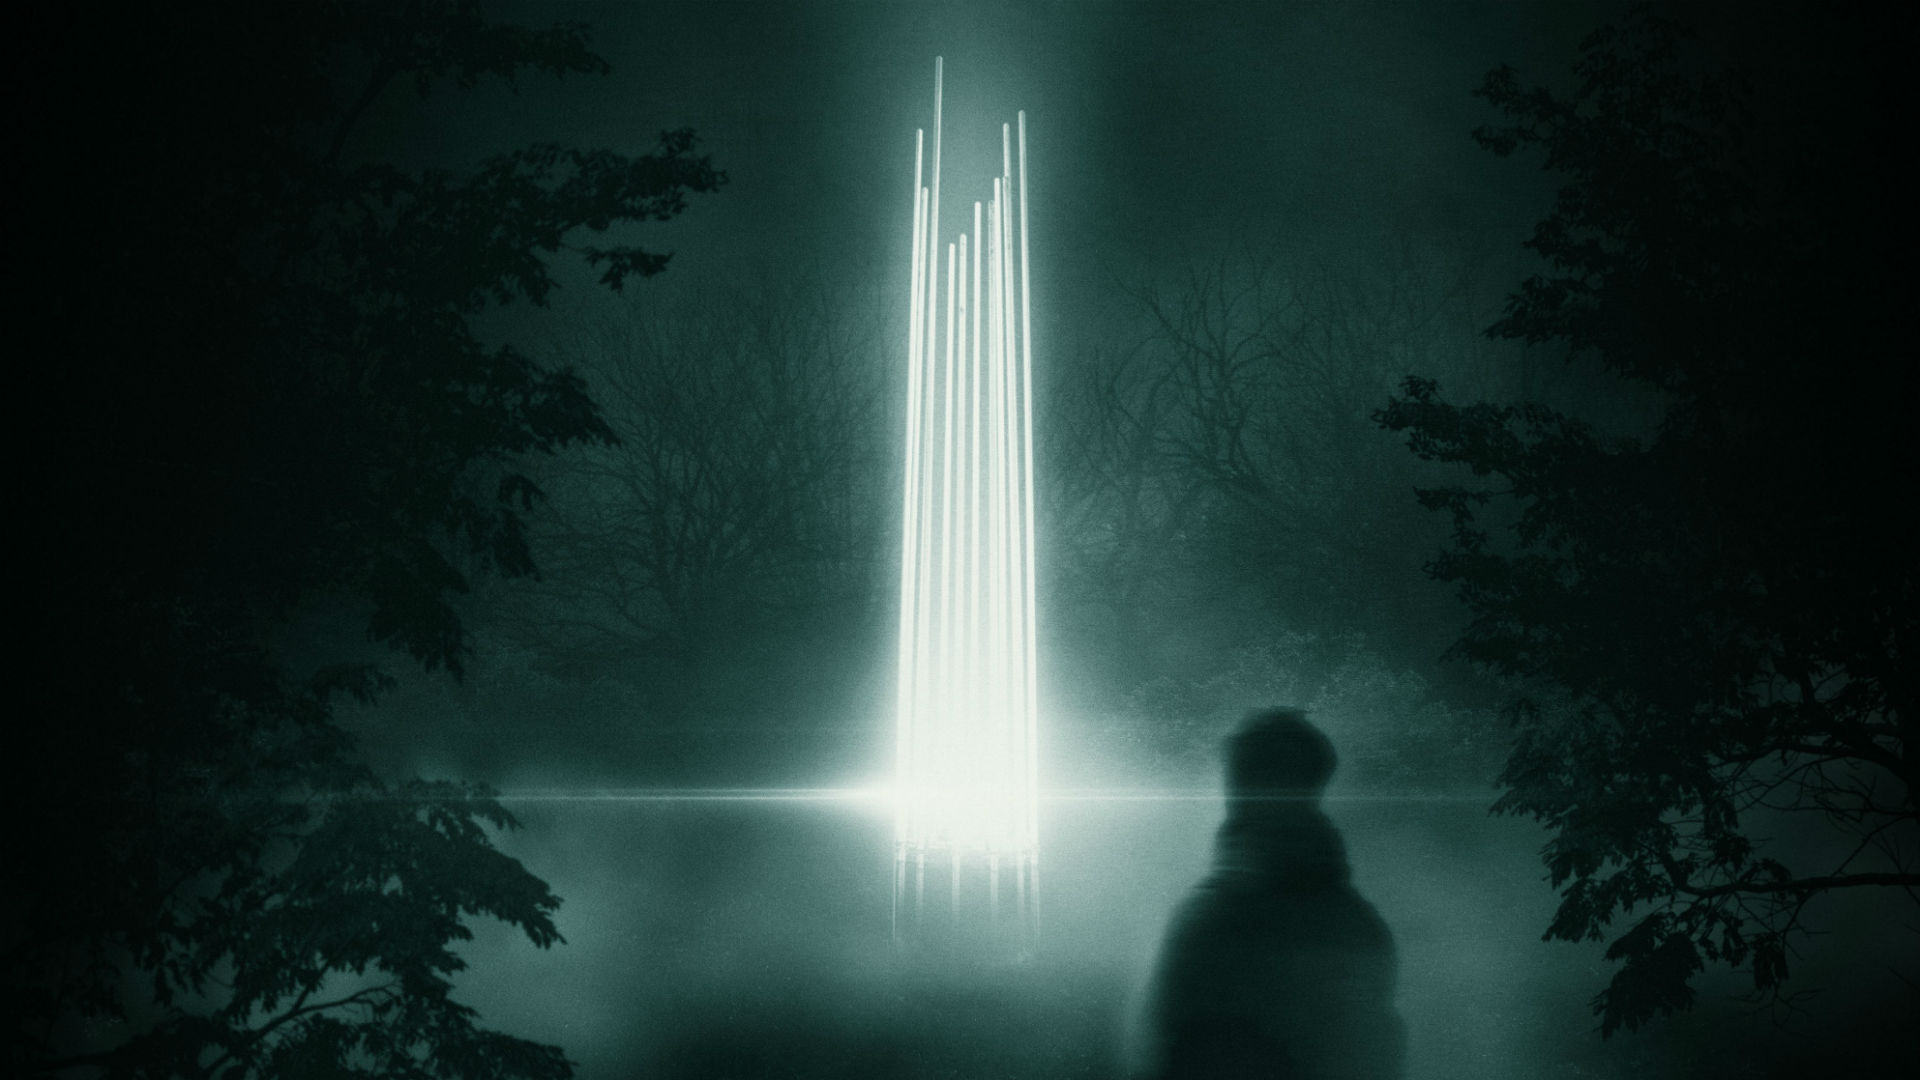 A linear light beam in the middle of the lake in a dark forest, as part of Forest Uprising.